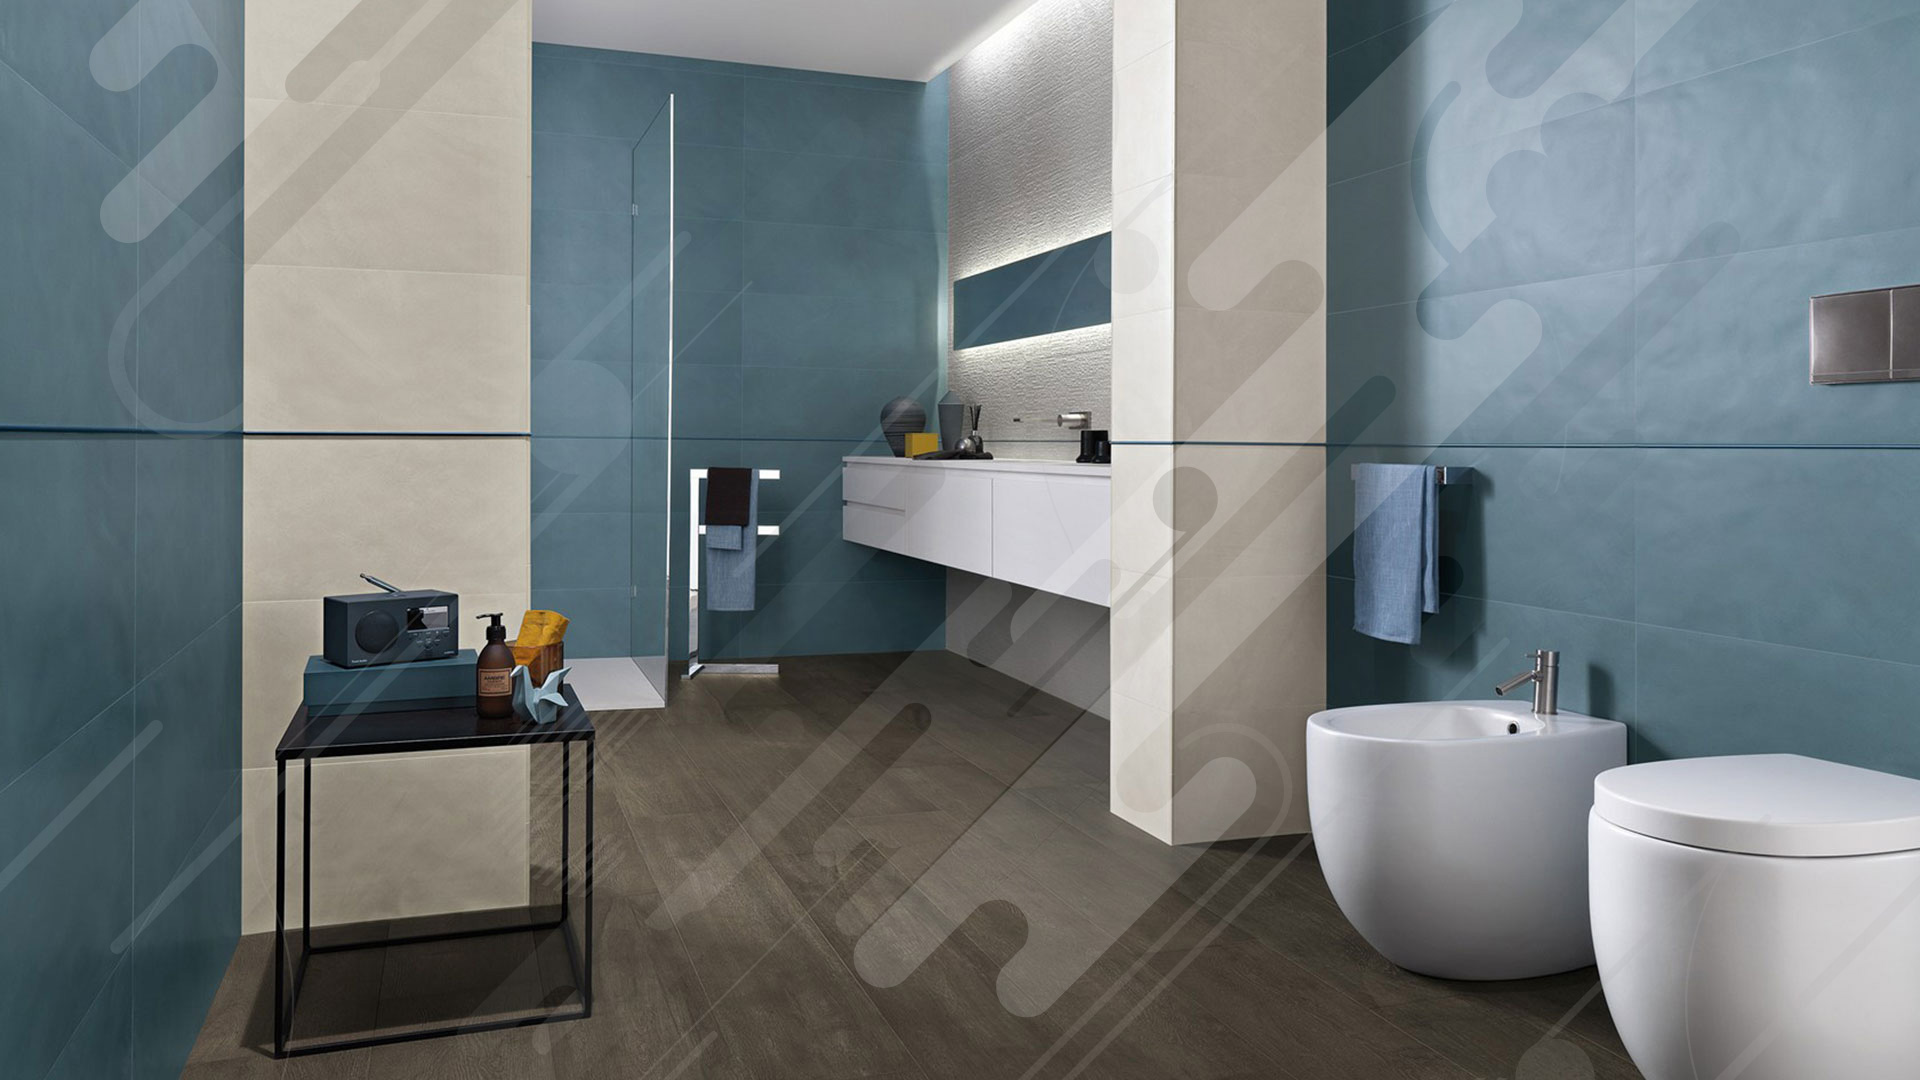 Welcome To Platina Vitrified Tiles Platina Vitrified Tiles Is A